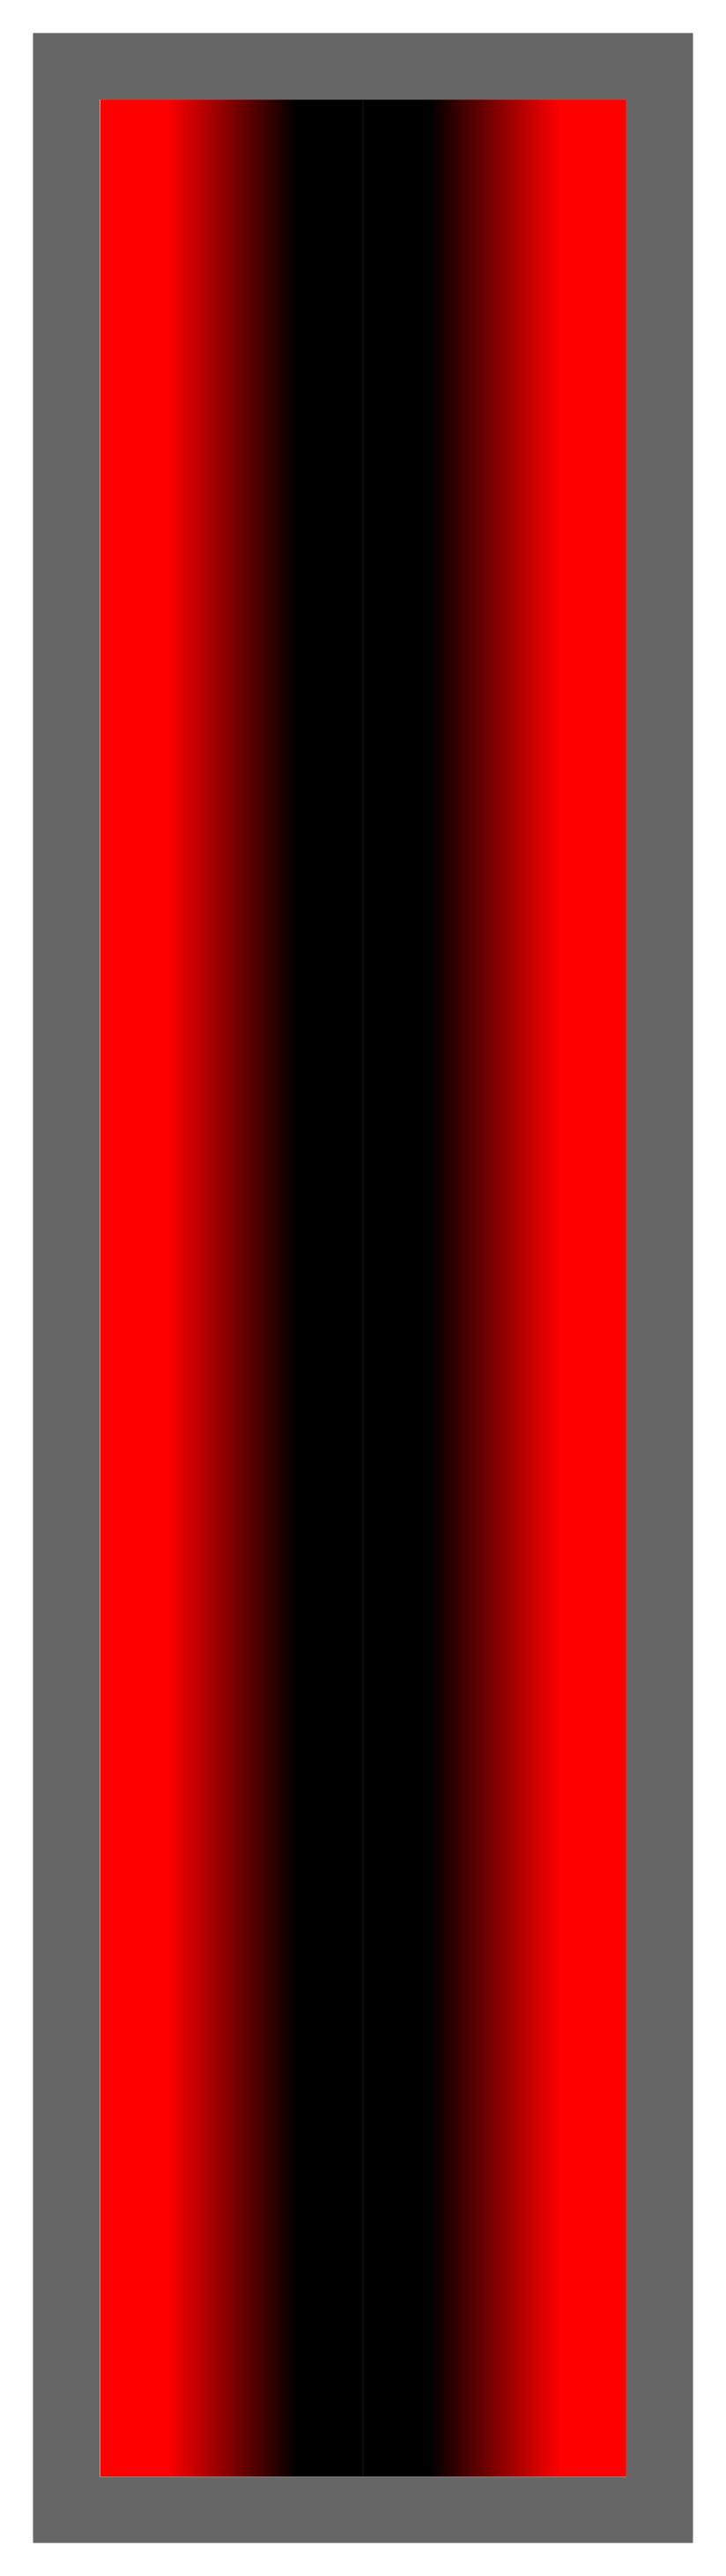 Red-Black-Red Ombre Stripe